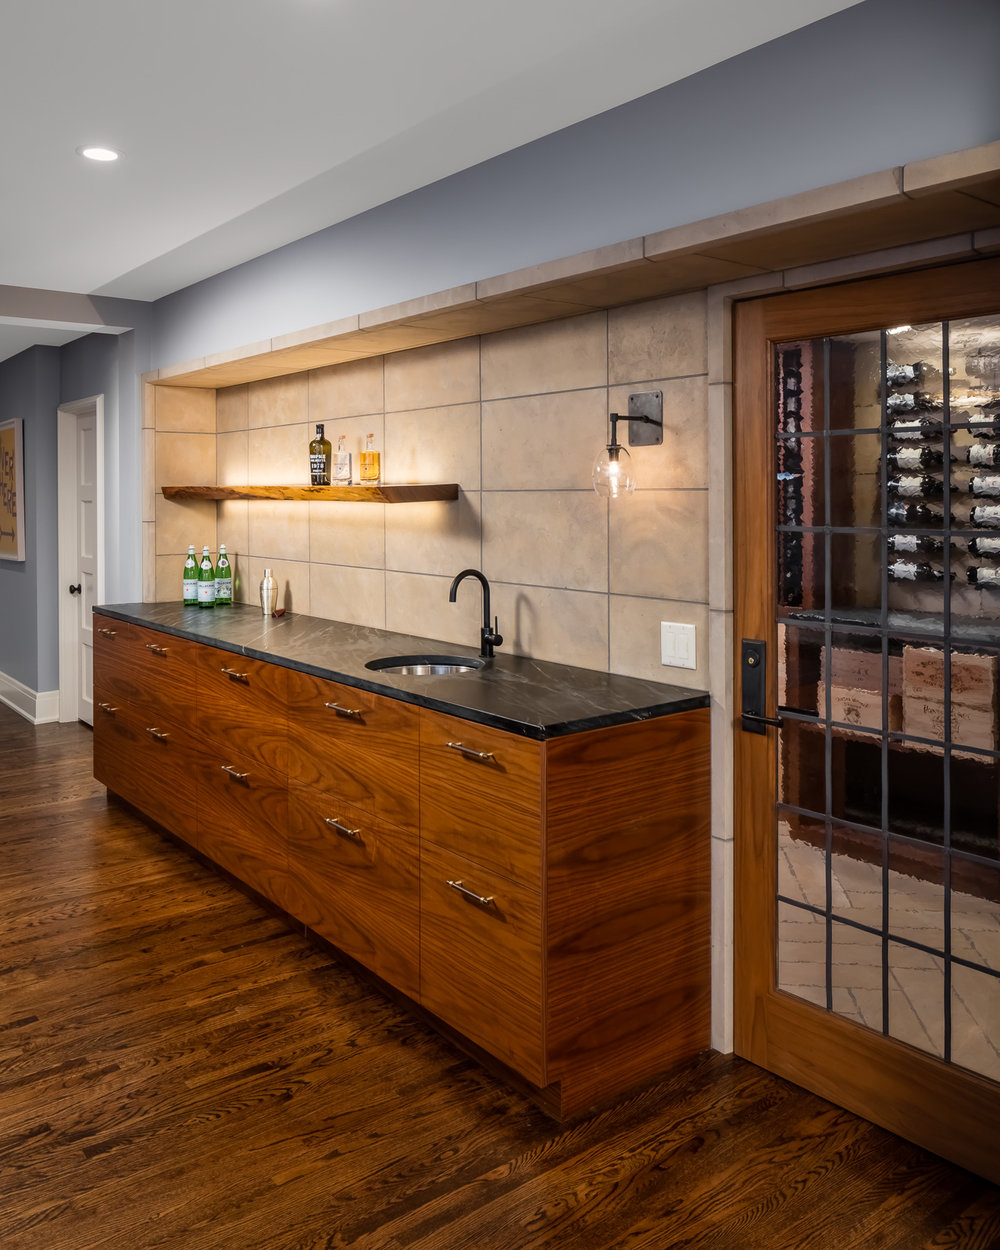 Bar installed / Entrance into wine cellar